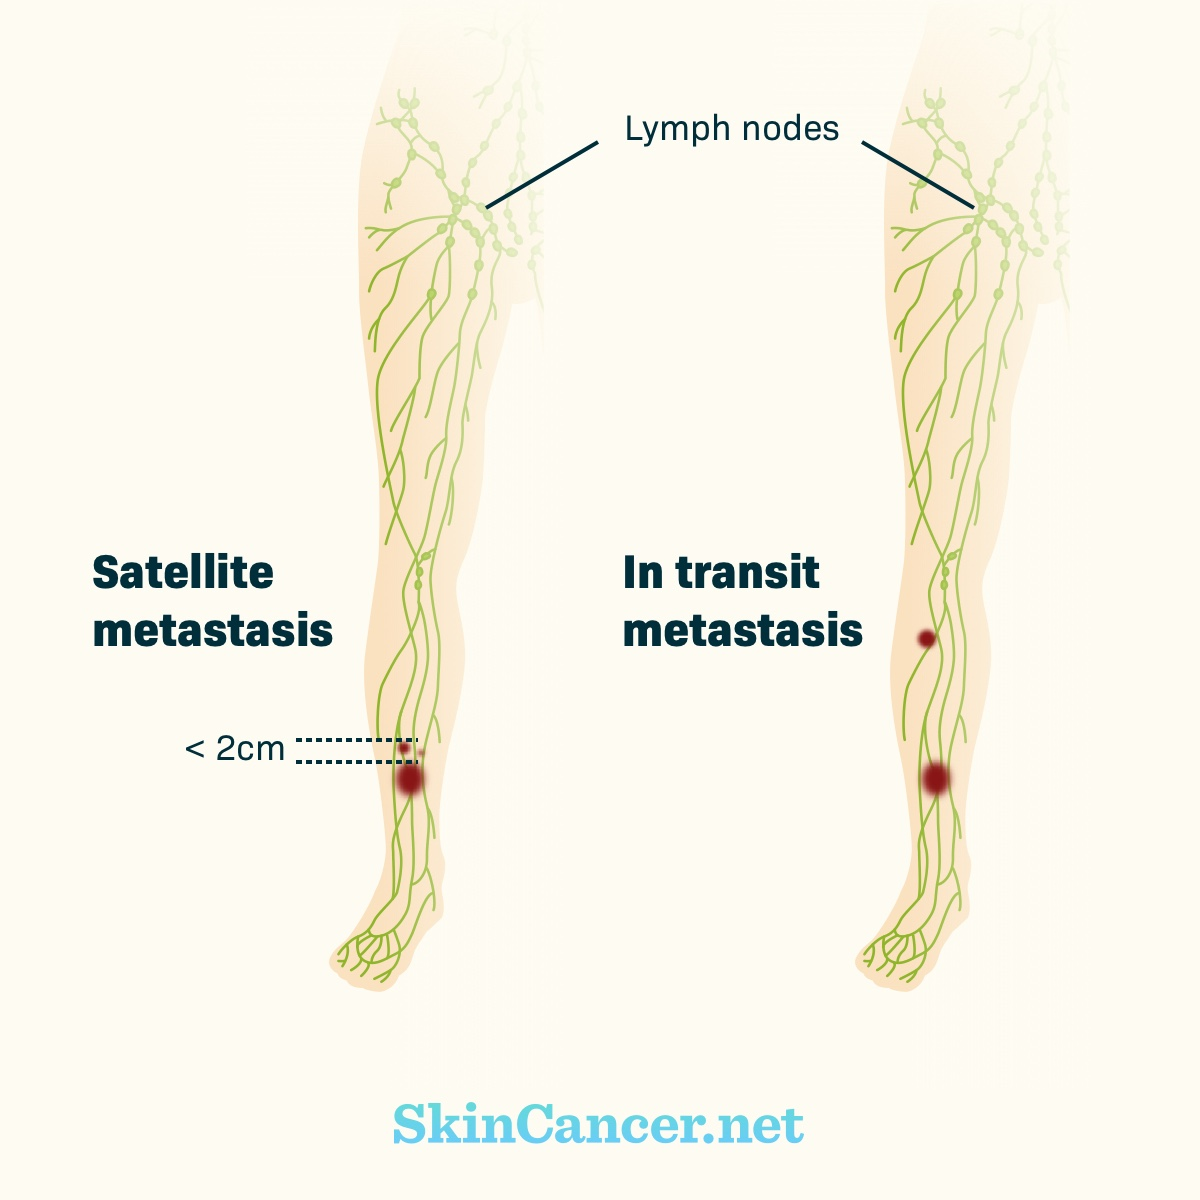 Red dots close together near the foot show satellite metastasis, while one red dot in the calf and one near the foot show in-transit metastasis